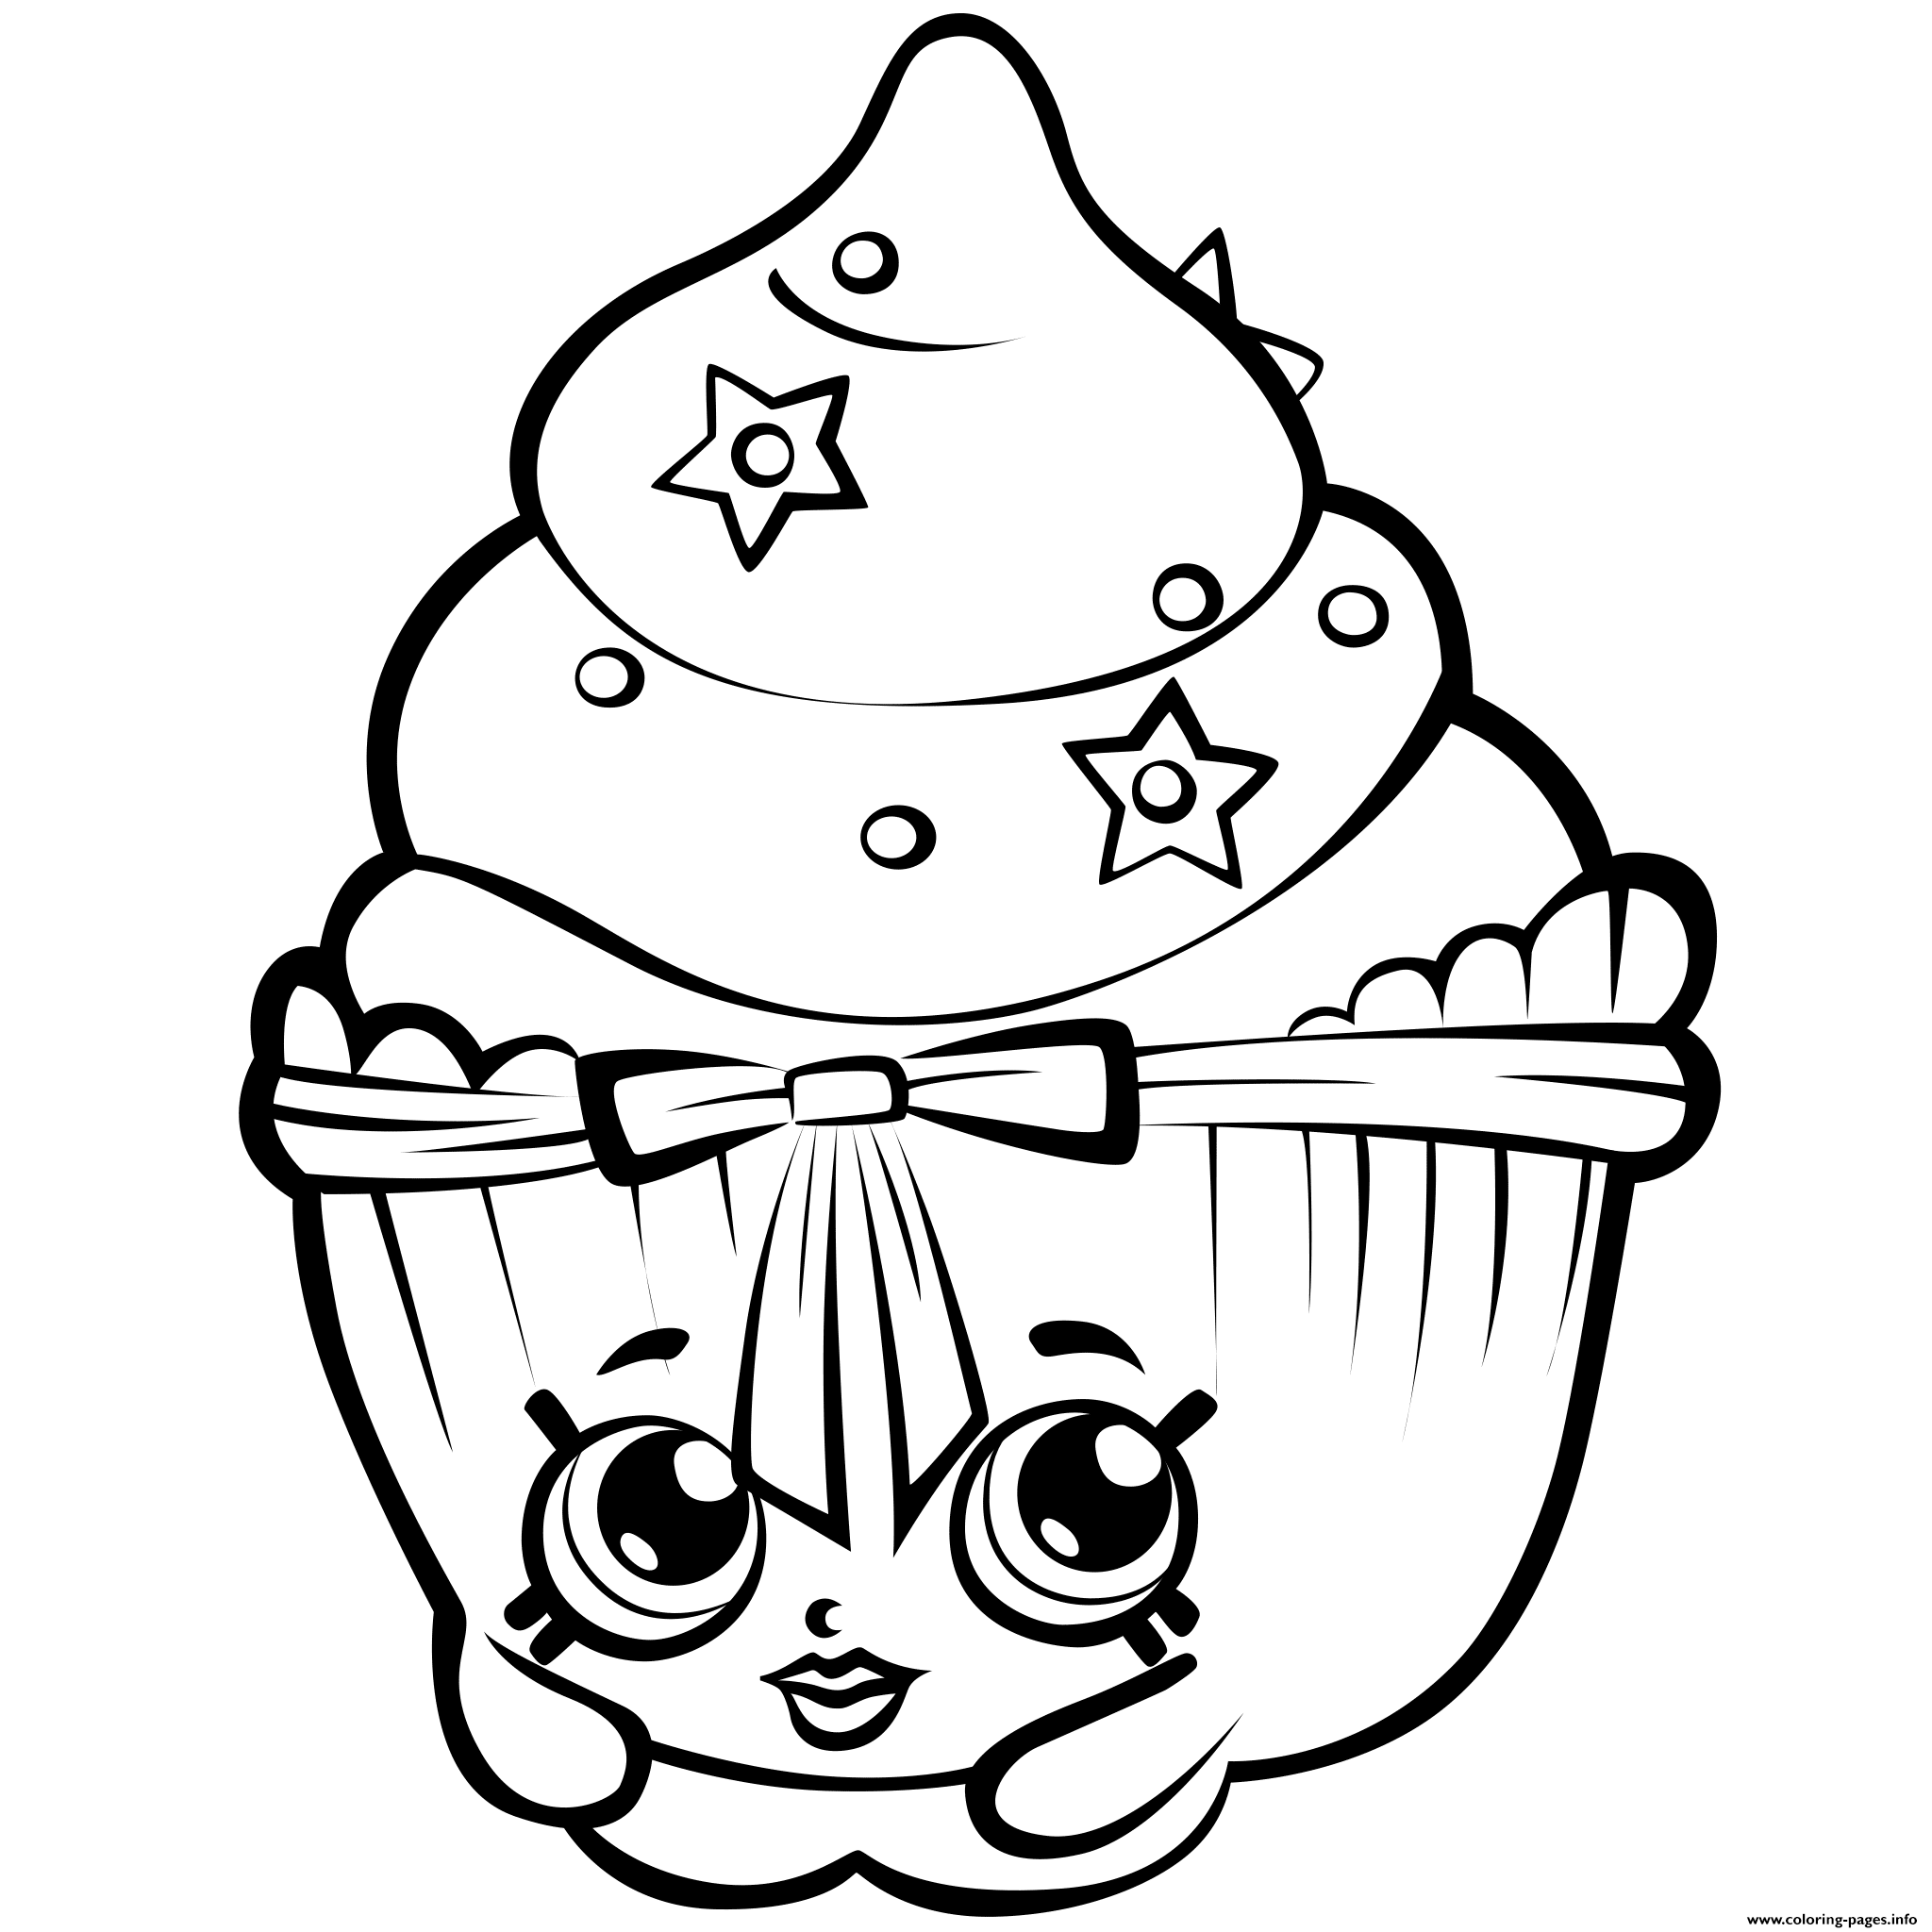 Print Season 3 Patty Cake Shopkins Season 3 Coloring Pages